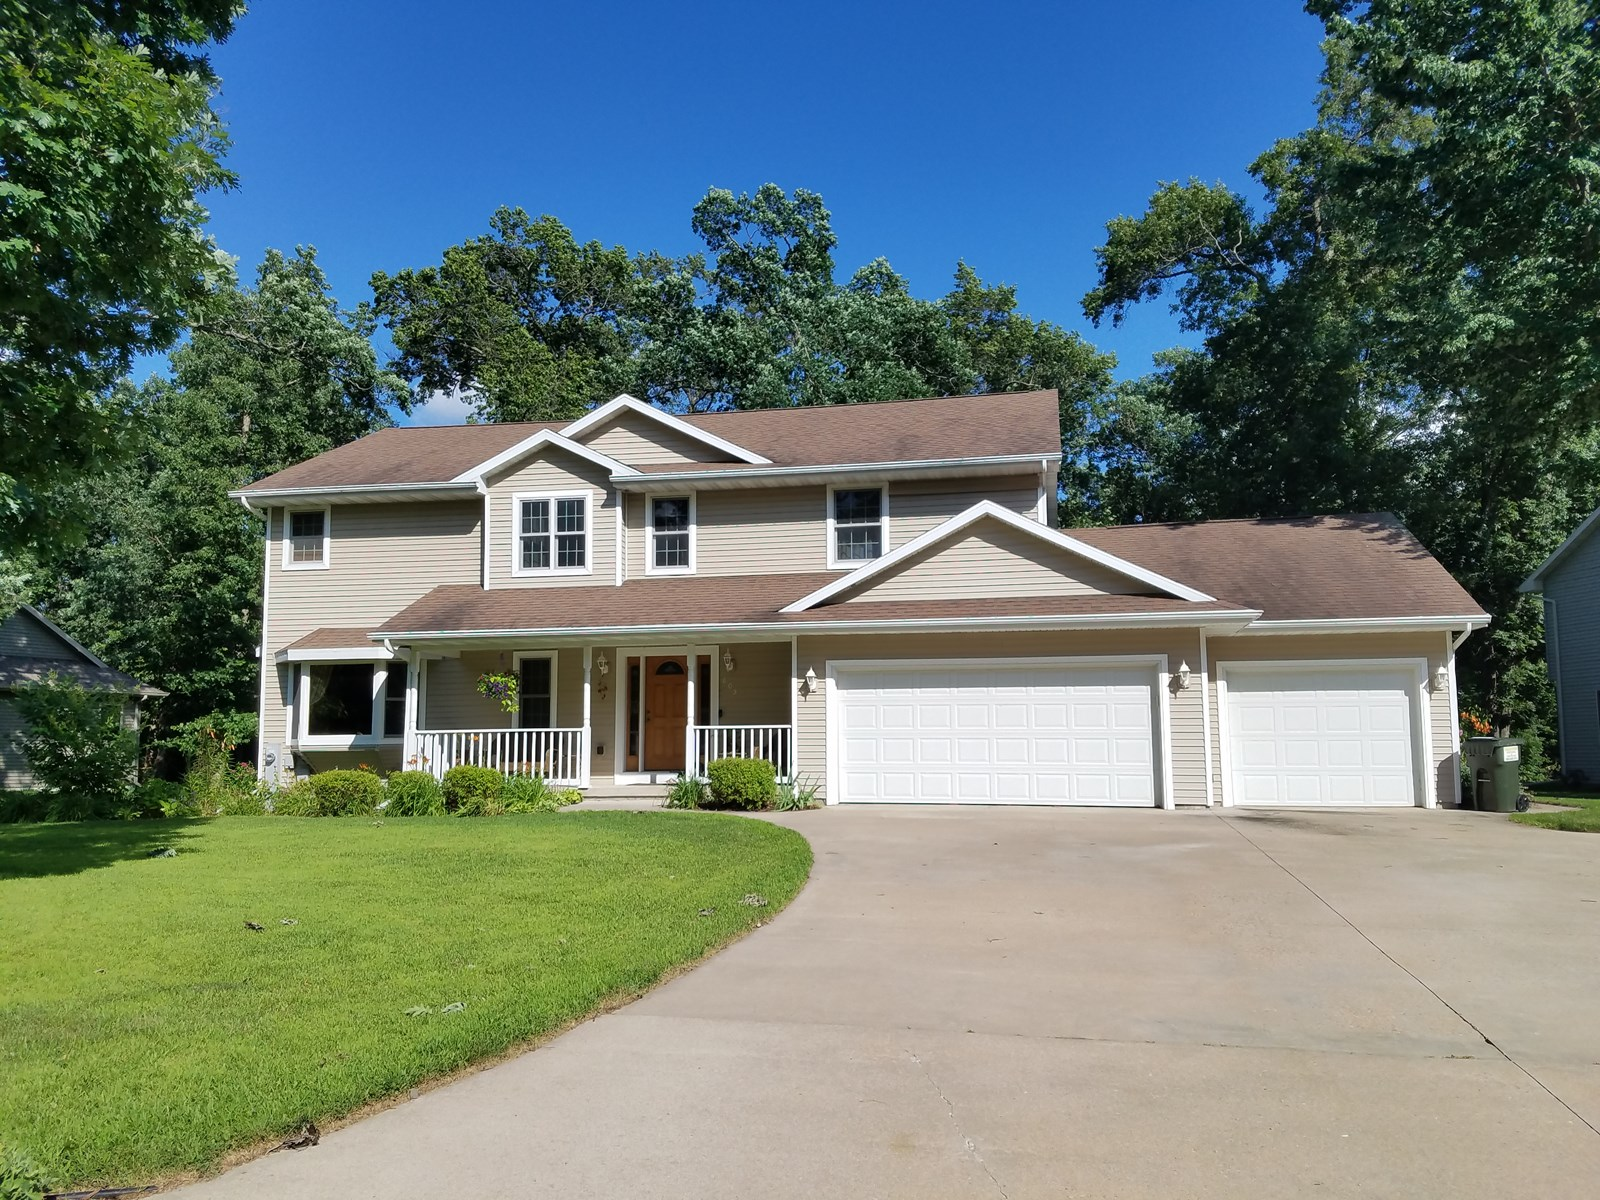 Beautiful Home for Sale in Waupaca, WI